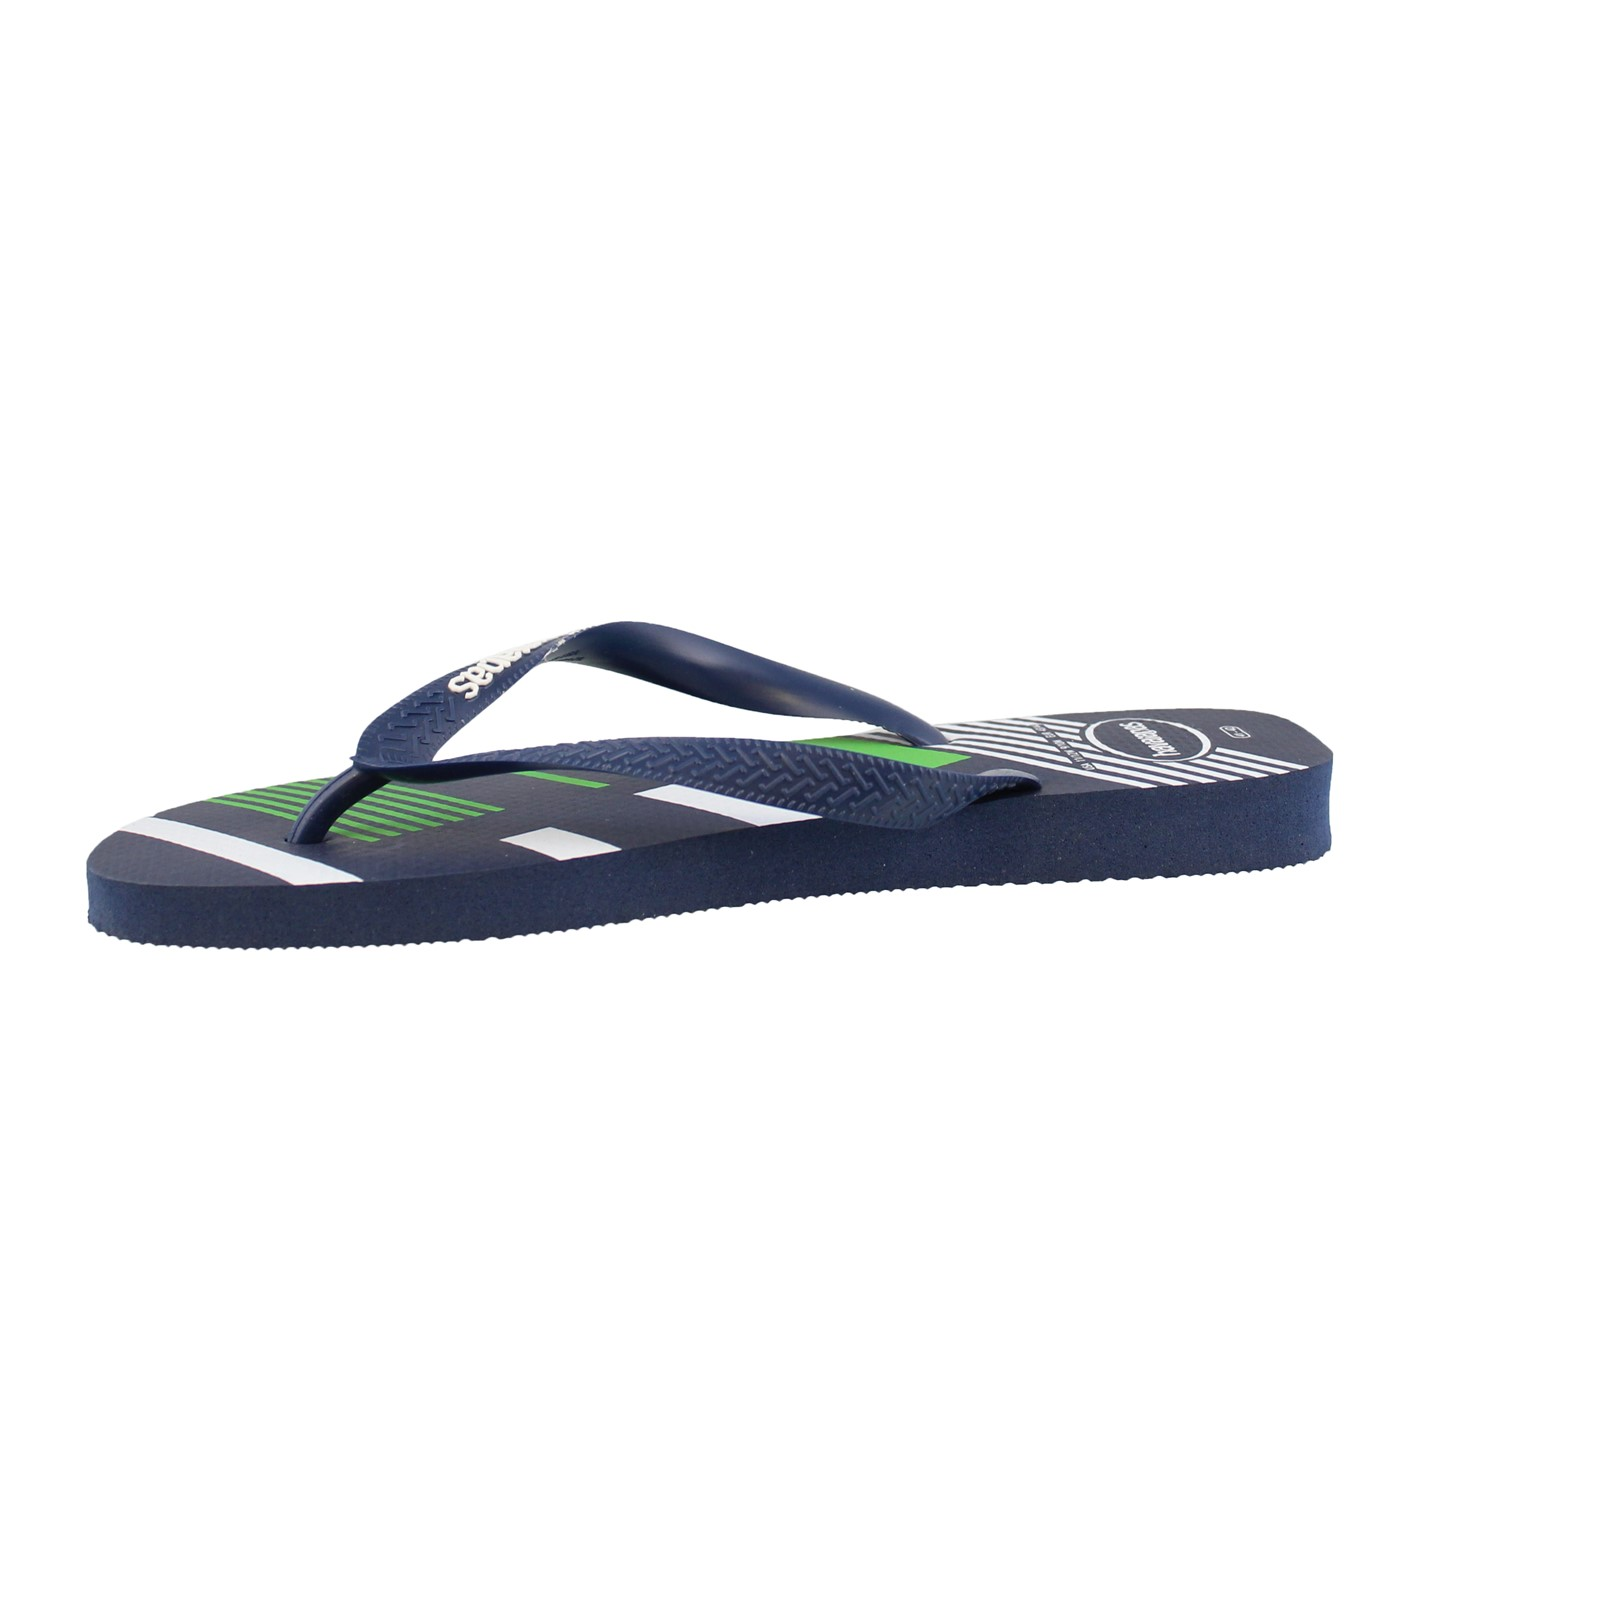 52cb5c8260780 Next. add to favorites. Men s Havaianas